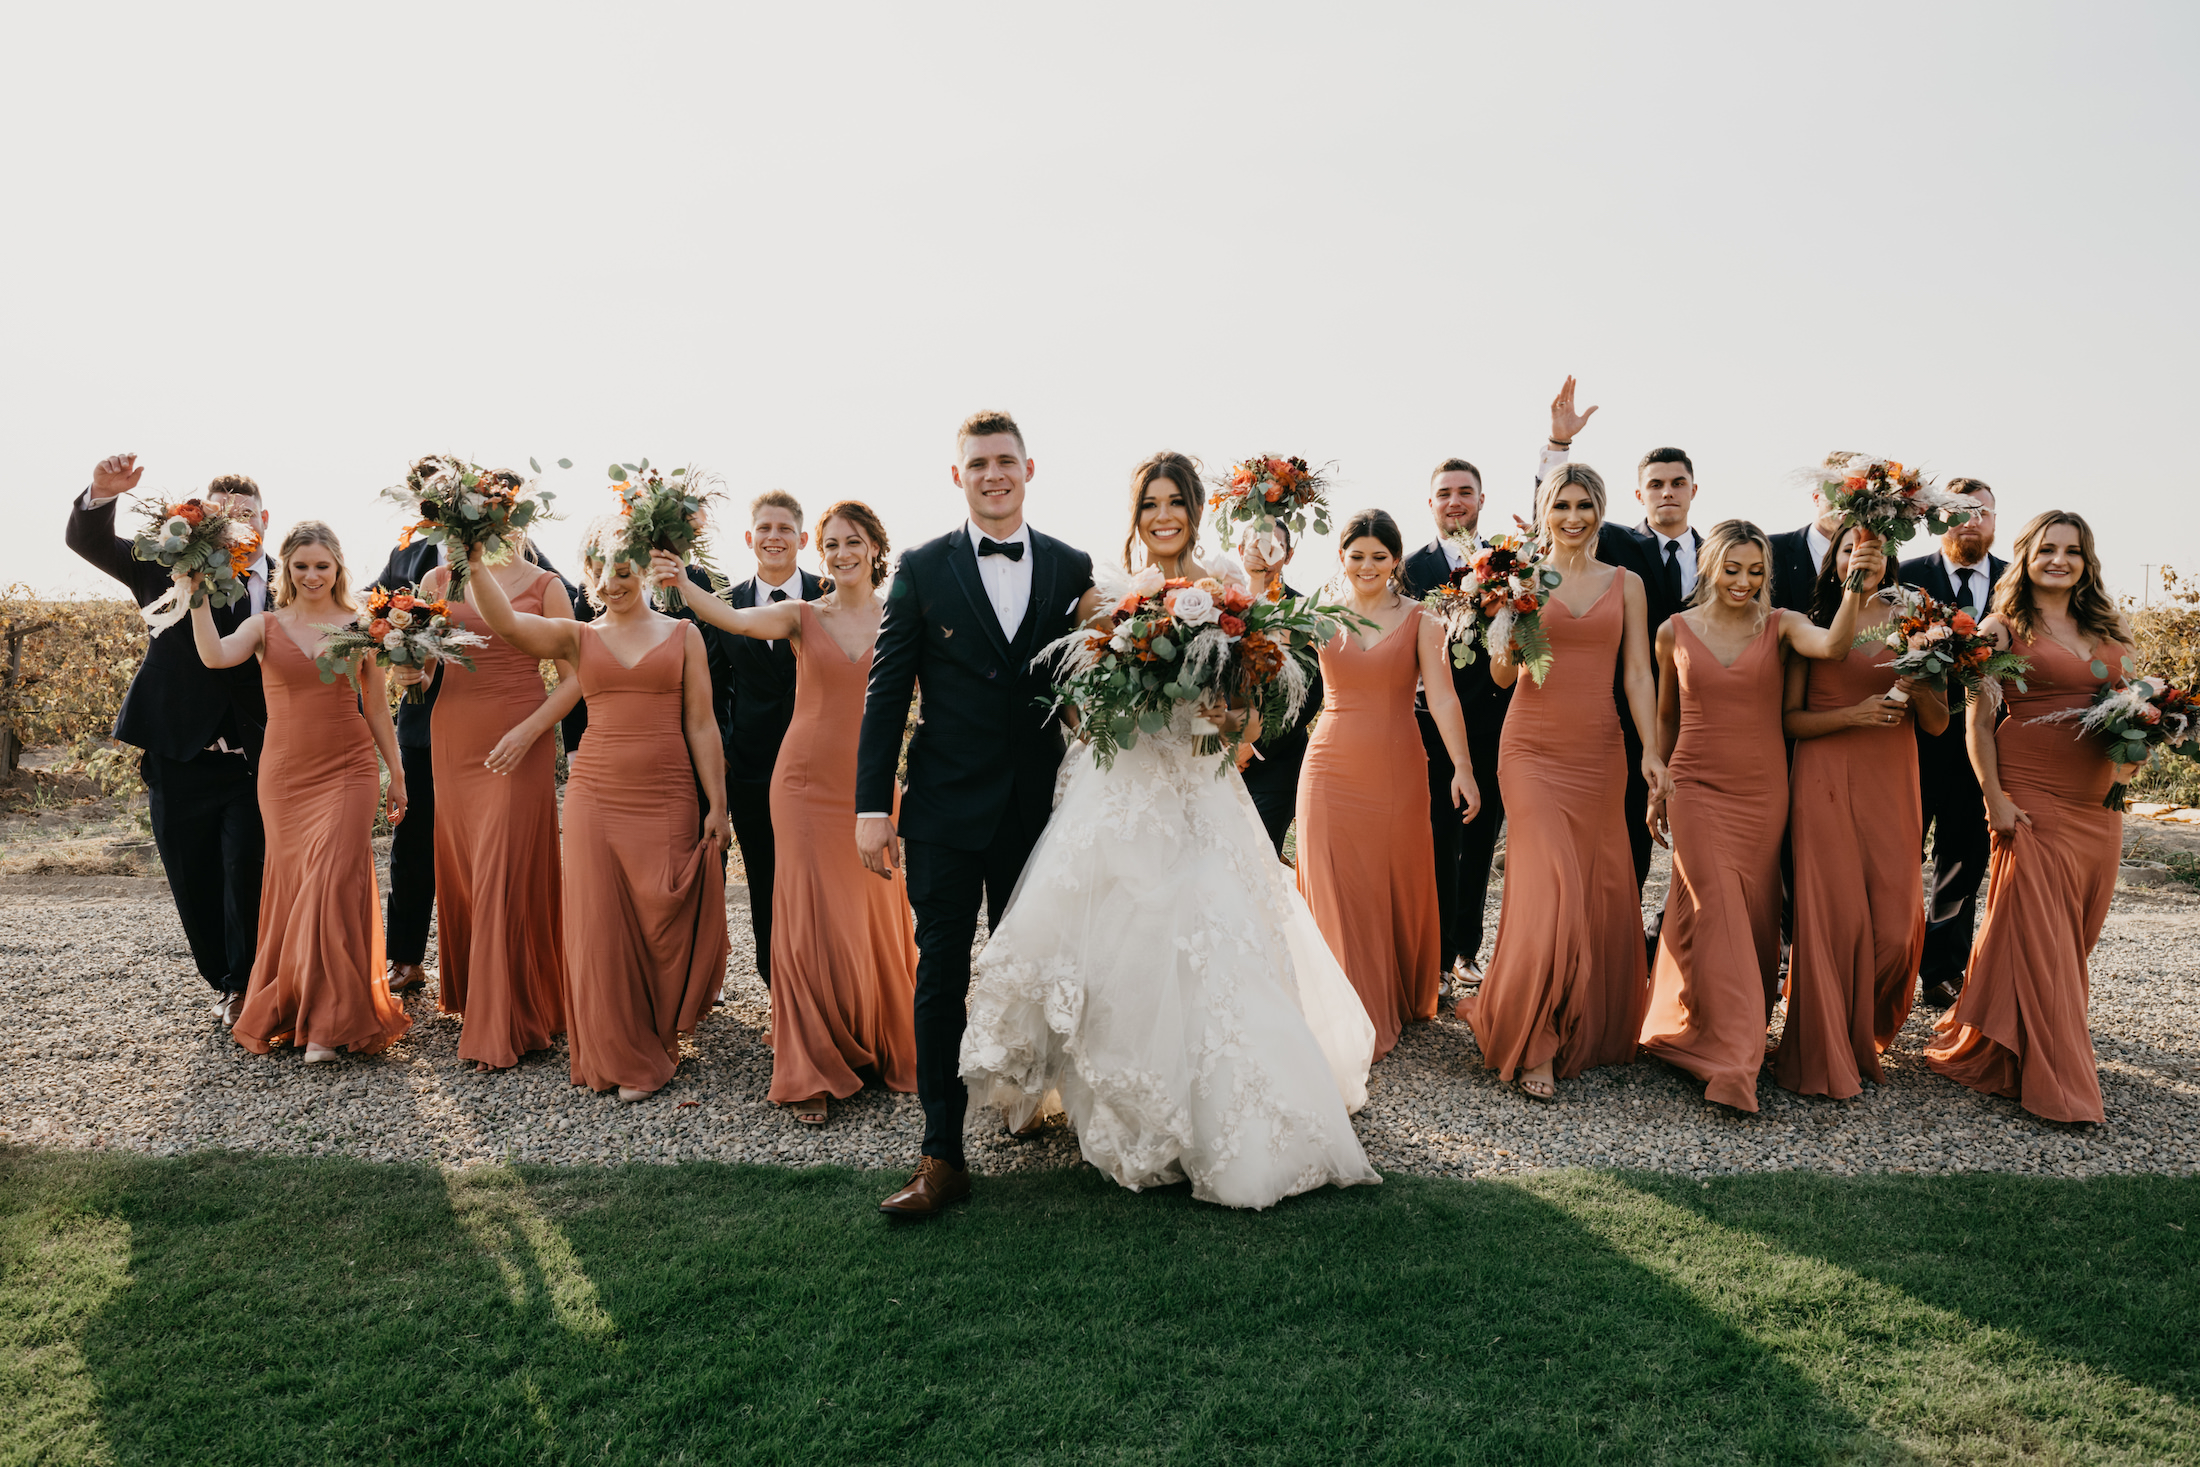 Evanelle Vineyards Wedding Bride and Groom with their Bridal Party, image by Fatima Elreda Photo